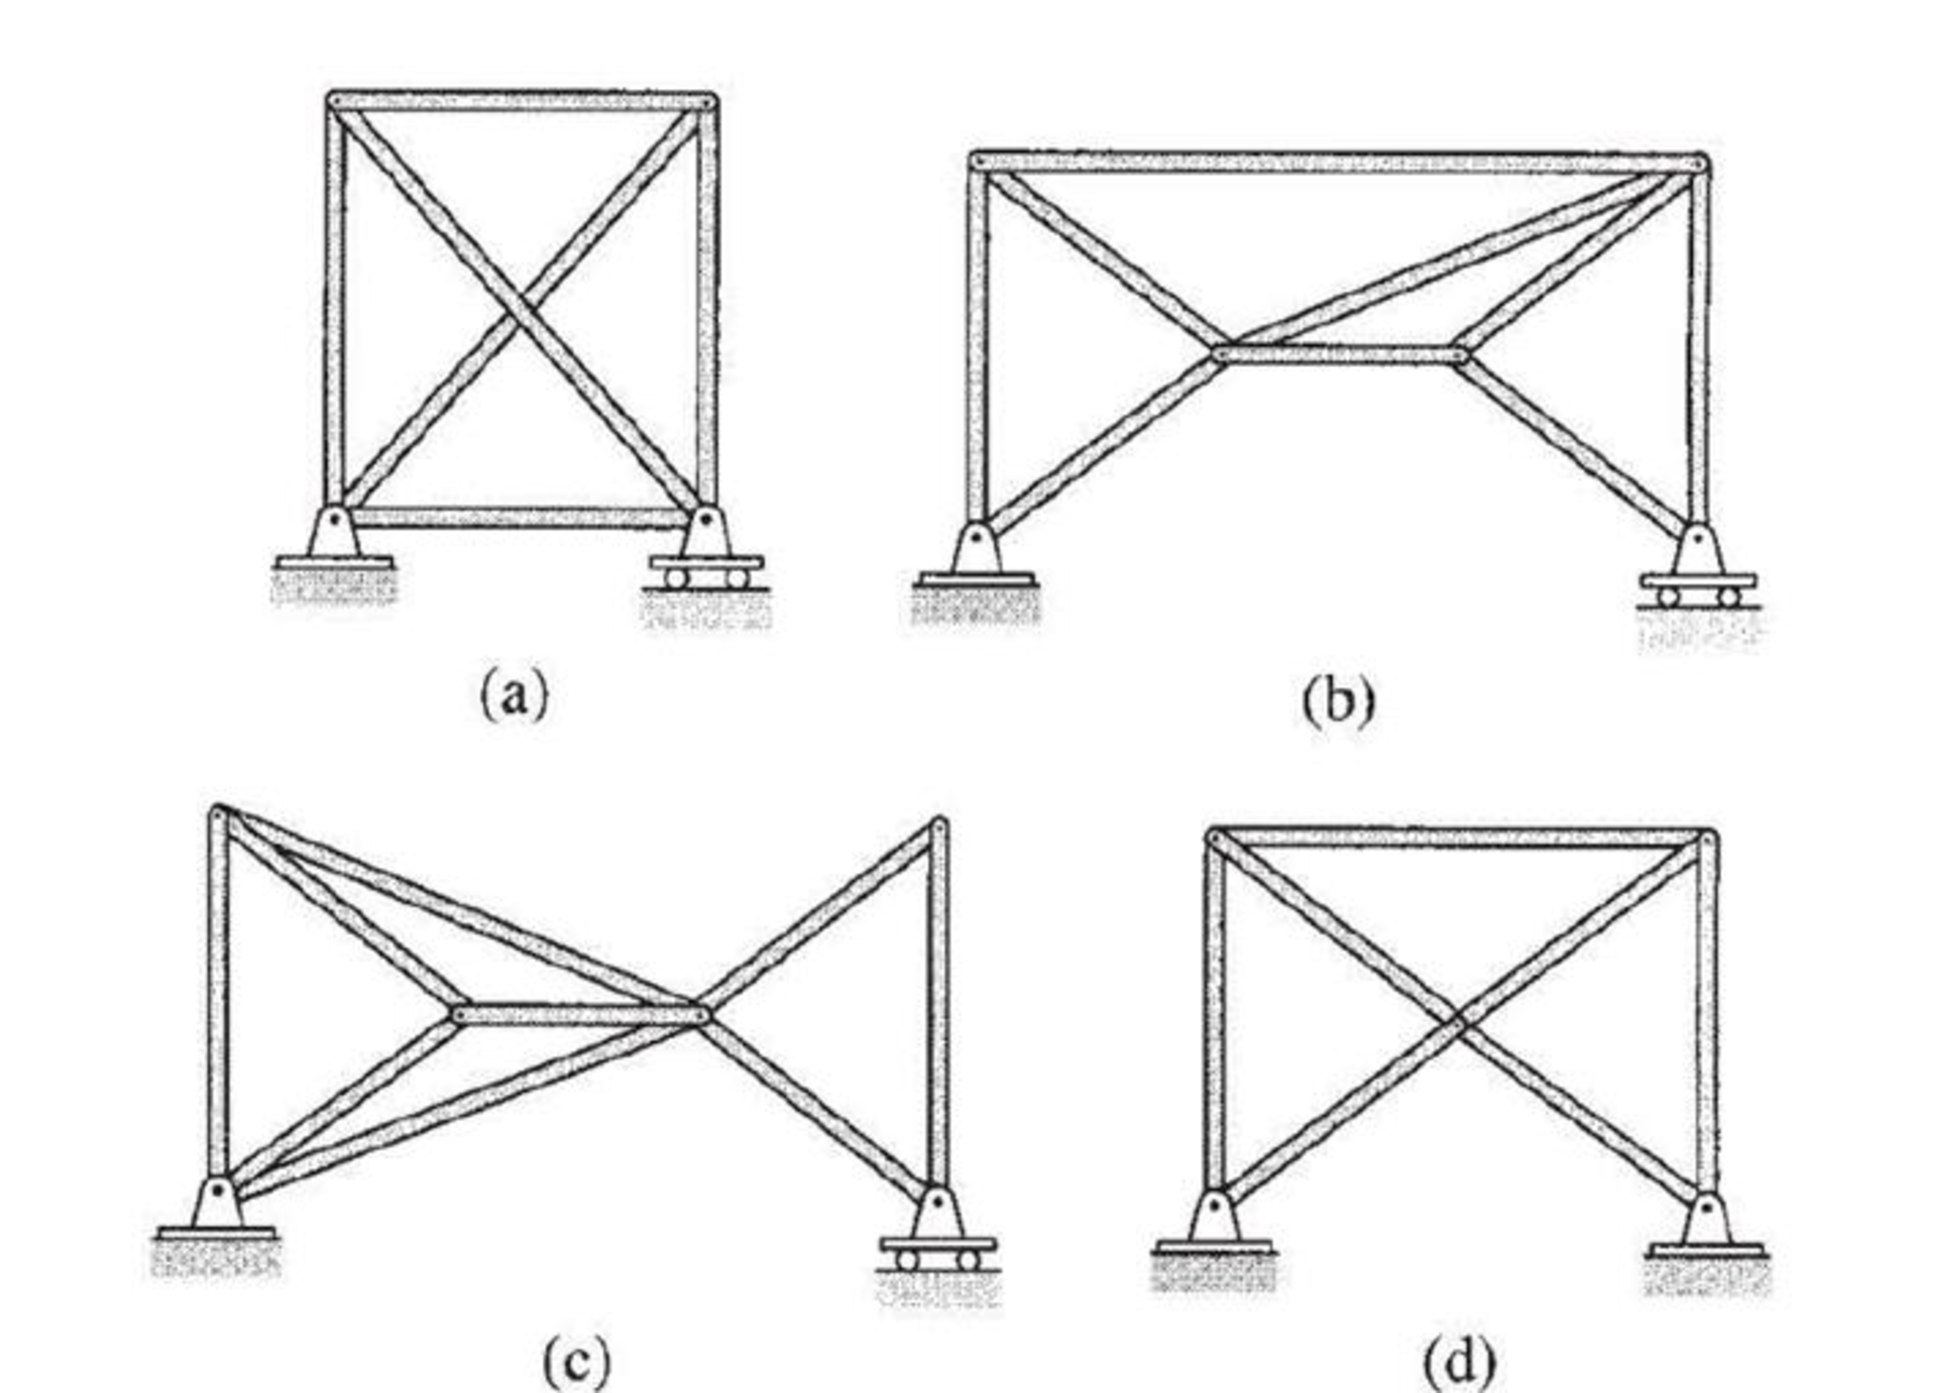 Chapter 4, Problem 2P, Classify each of the plane trusses shown as unstable, statically determine or statically